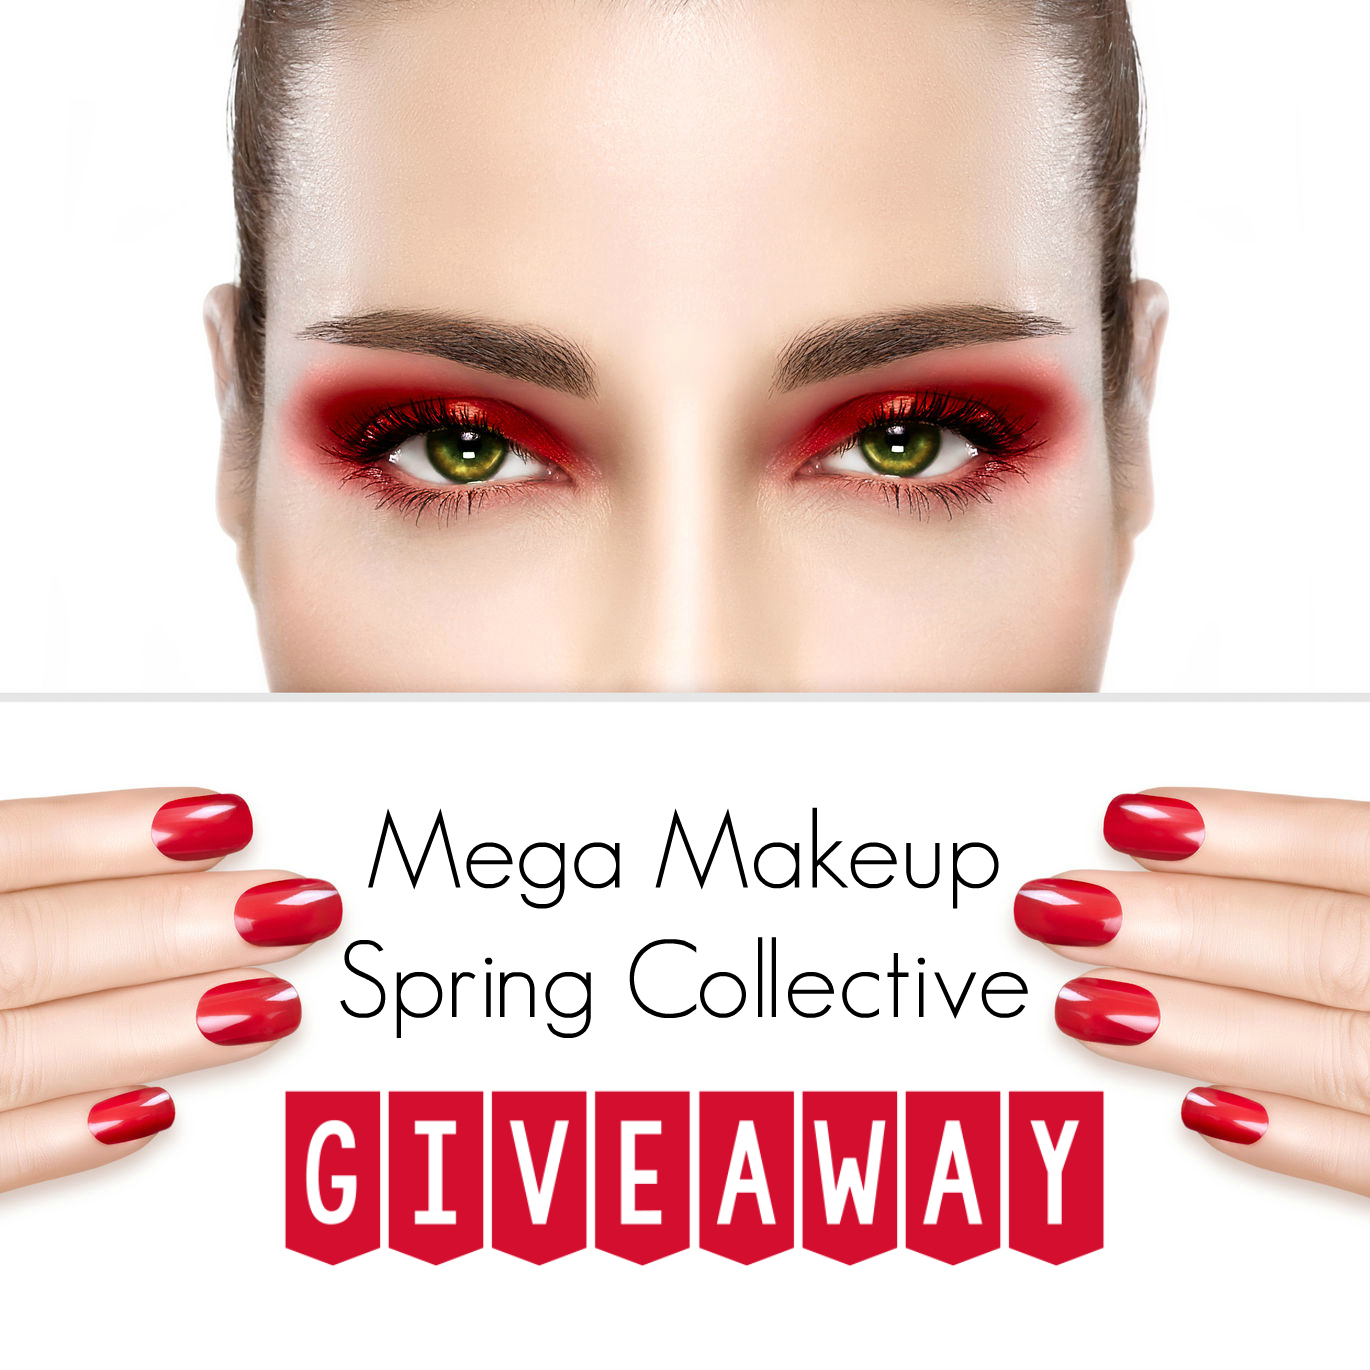 Mega Makeup Spring Collective Giveaway by Barbies beauty bits